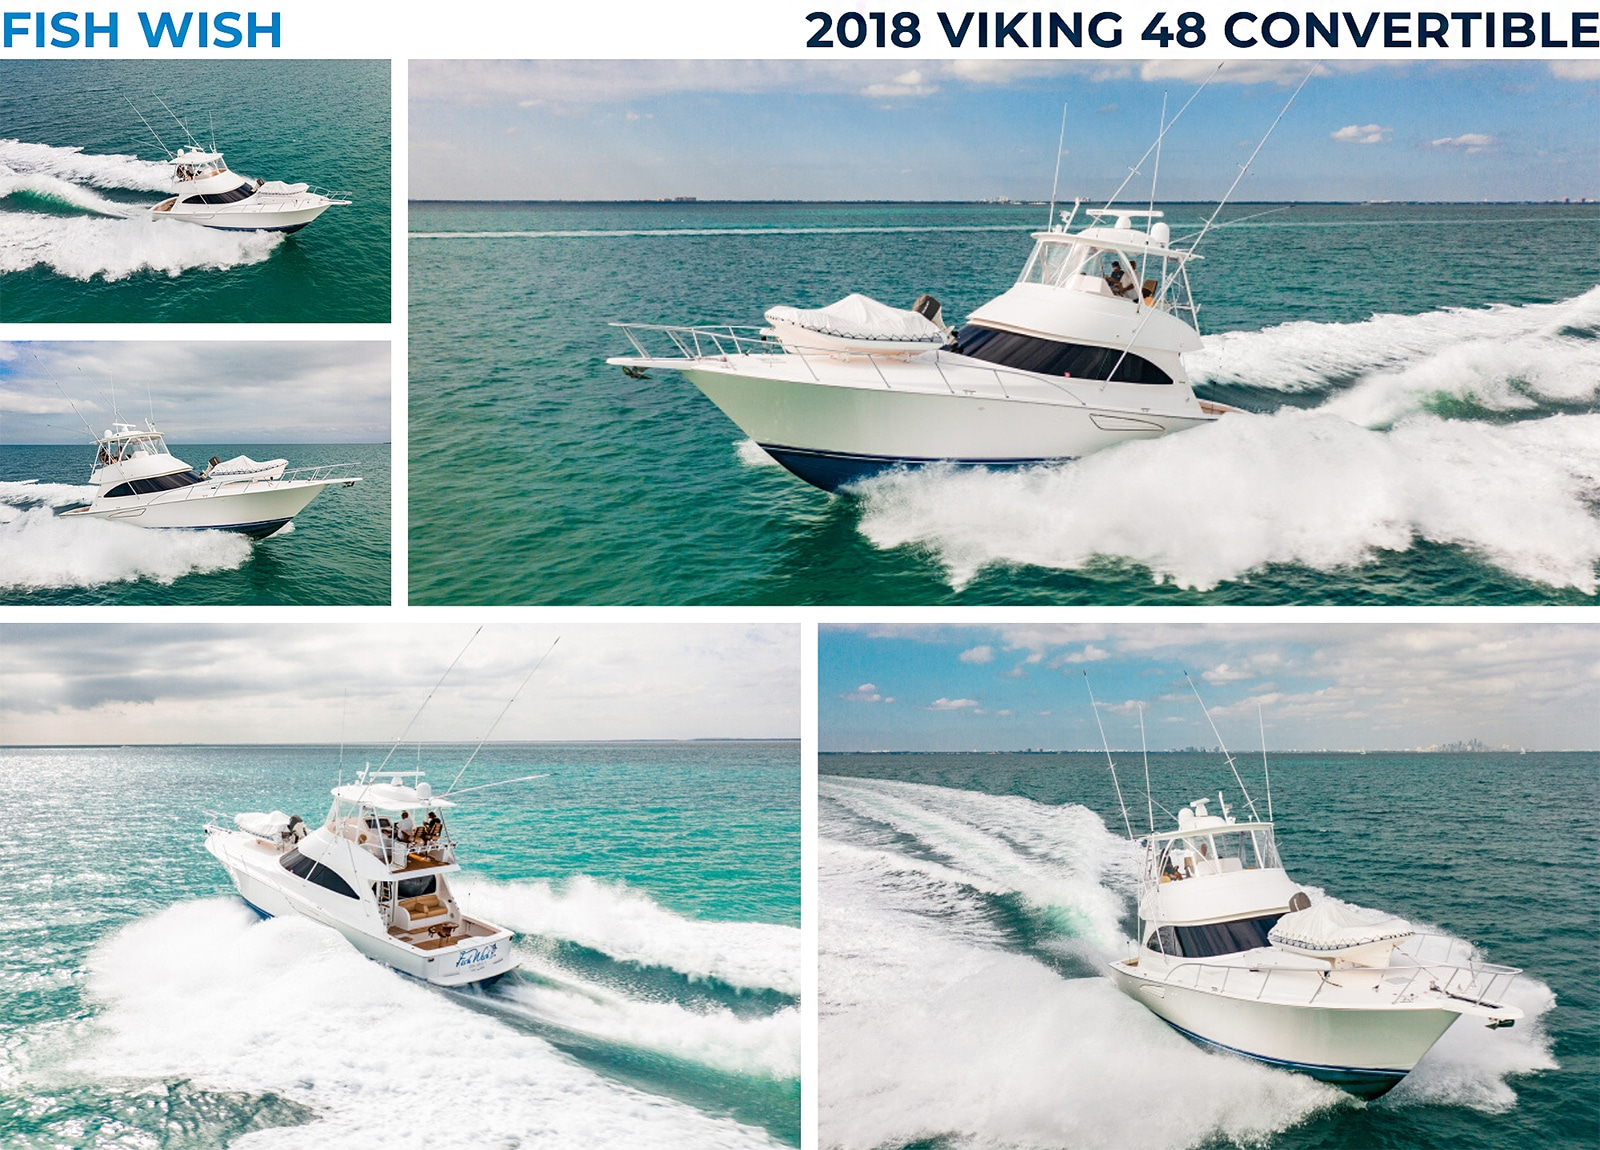 2018 Viking 48 Convertible Fish Wish